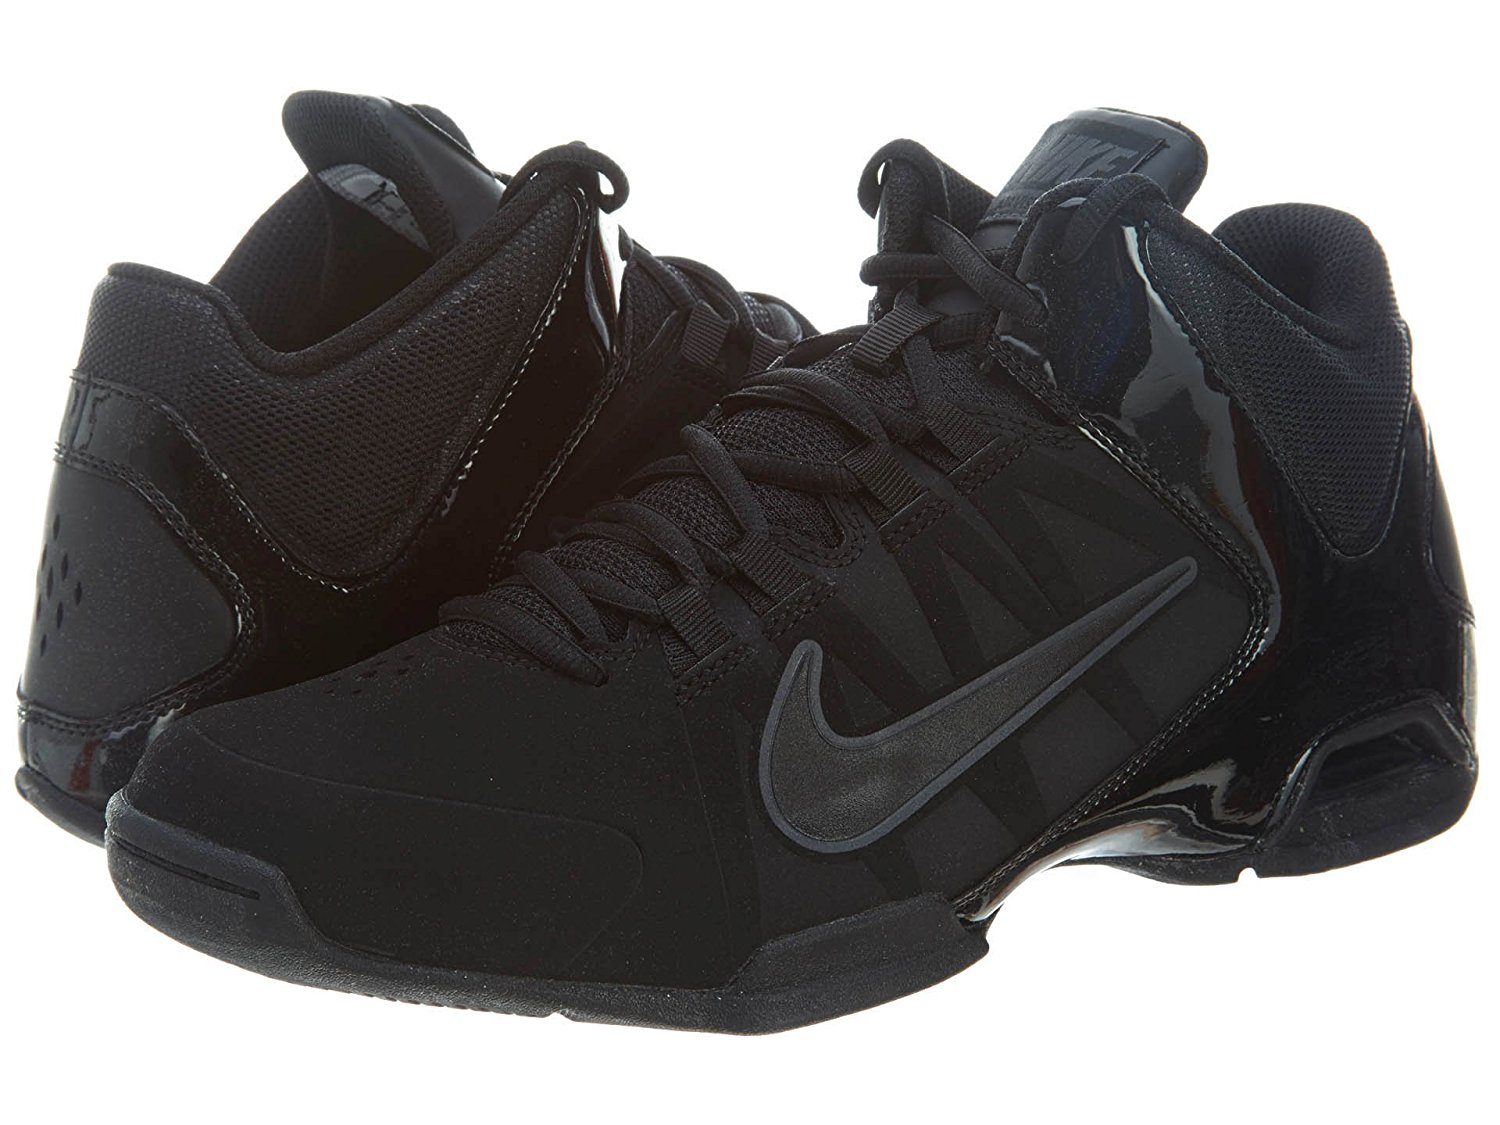 edab2d4e395 Nike Air Visi Pro 4 Basketball Shoes Size Mens 8.5 Black Gray EXCELLENT Cond